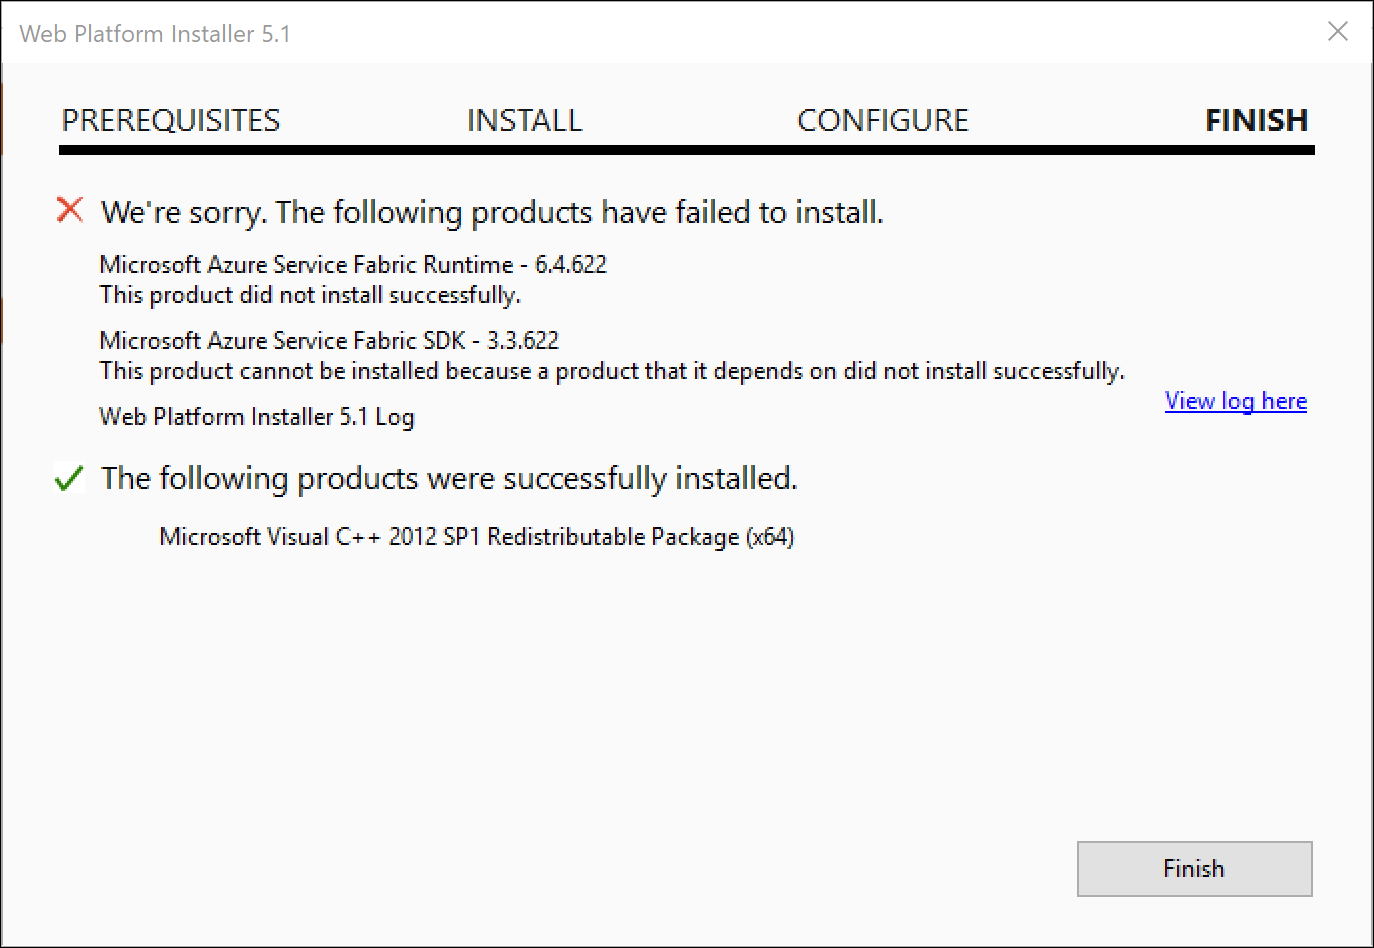 Cannot Install Because PowerShell Repeatedly Stops Working